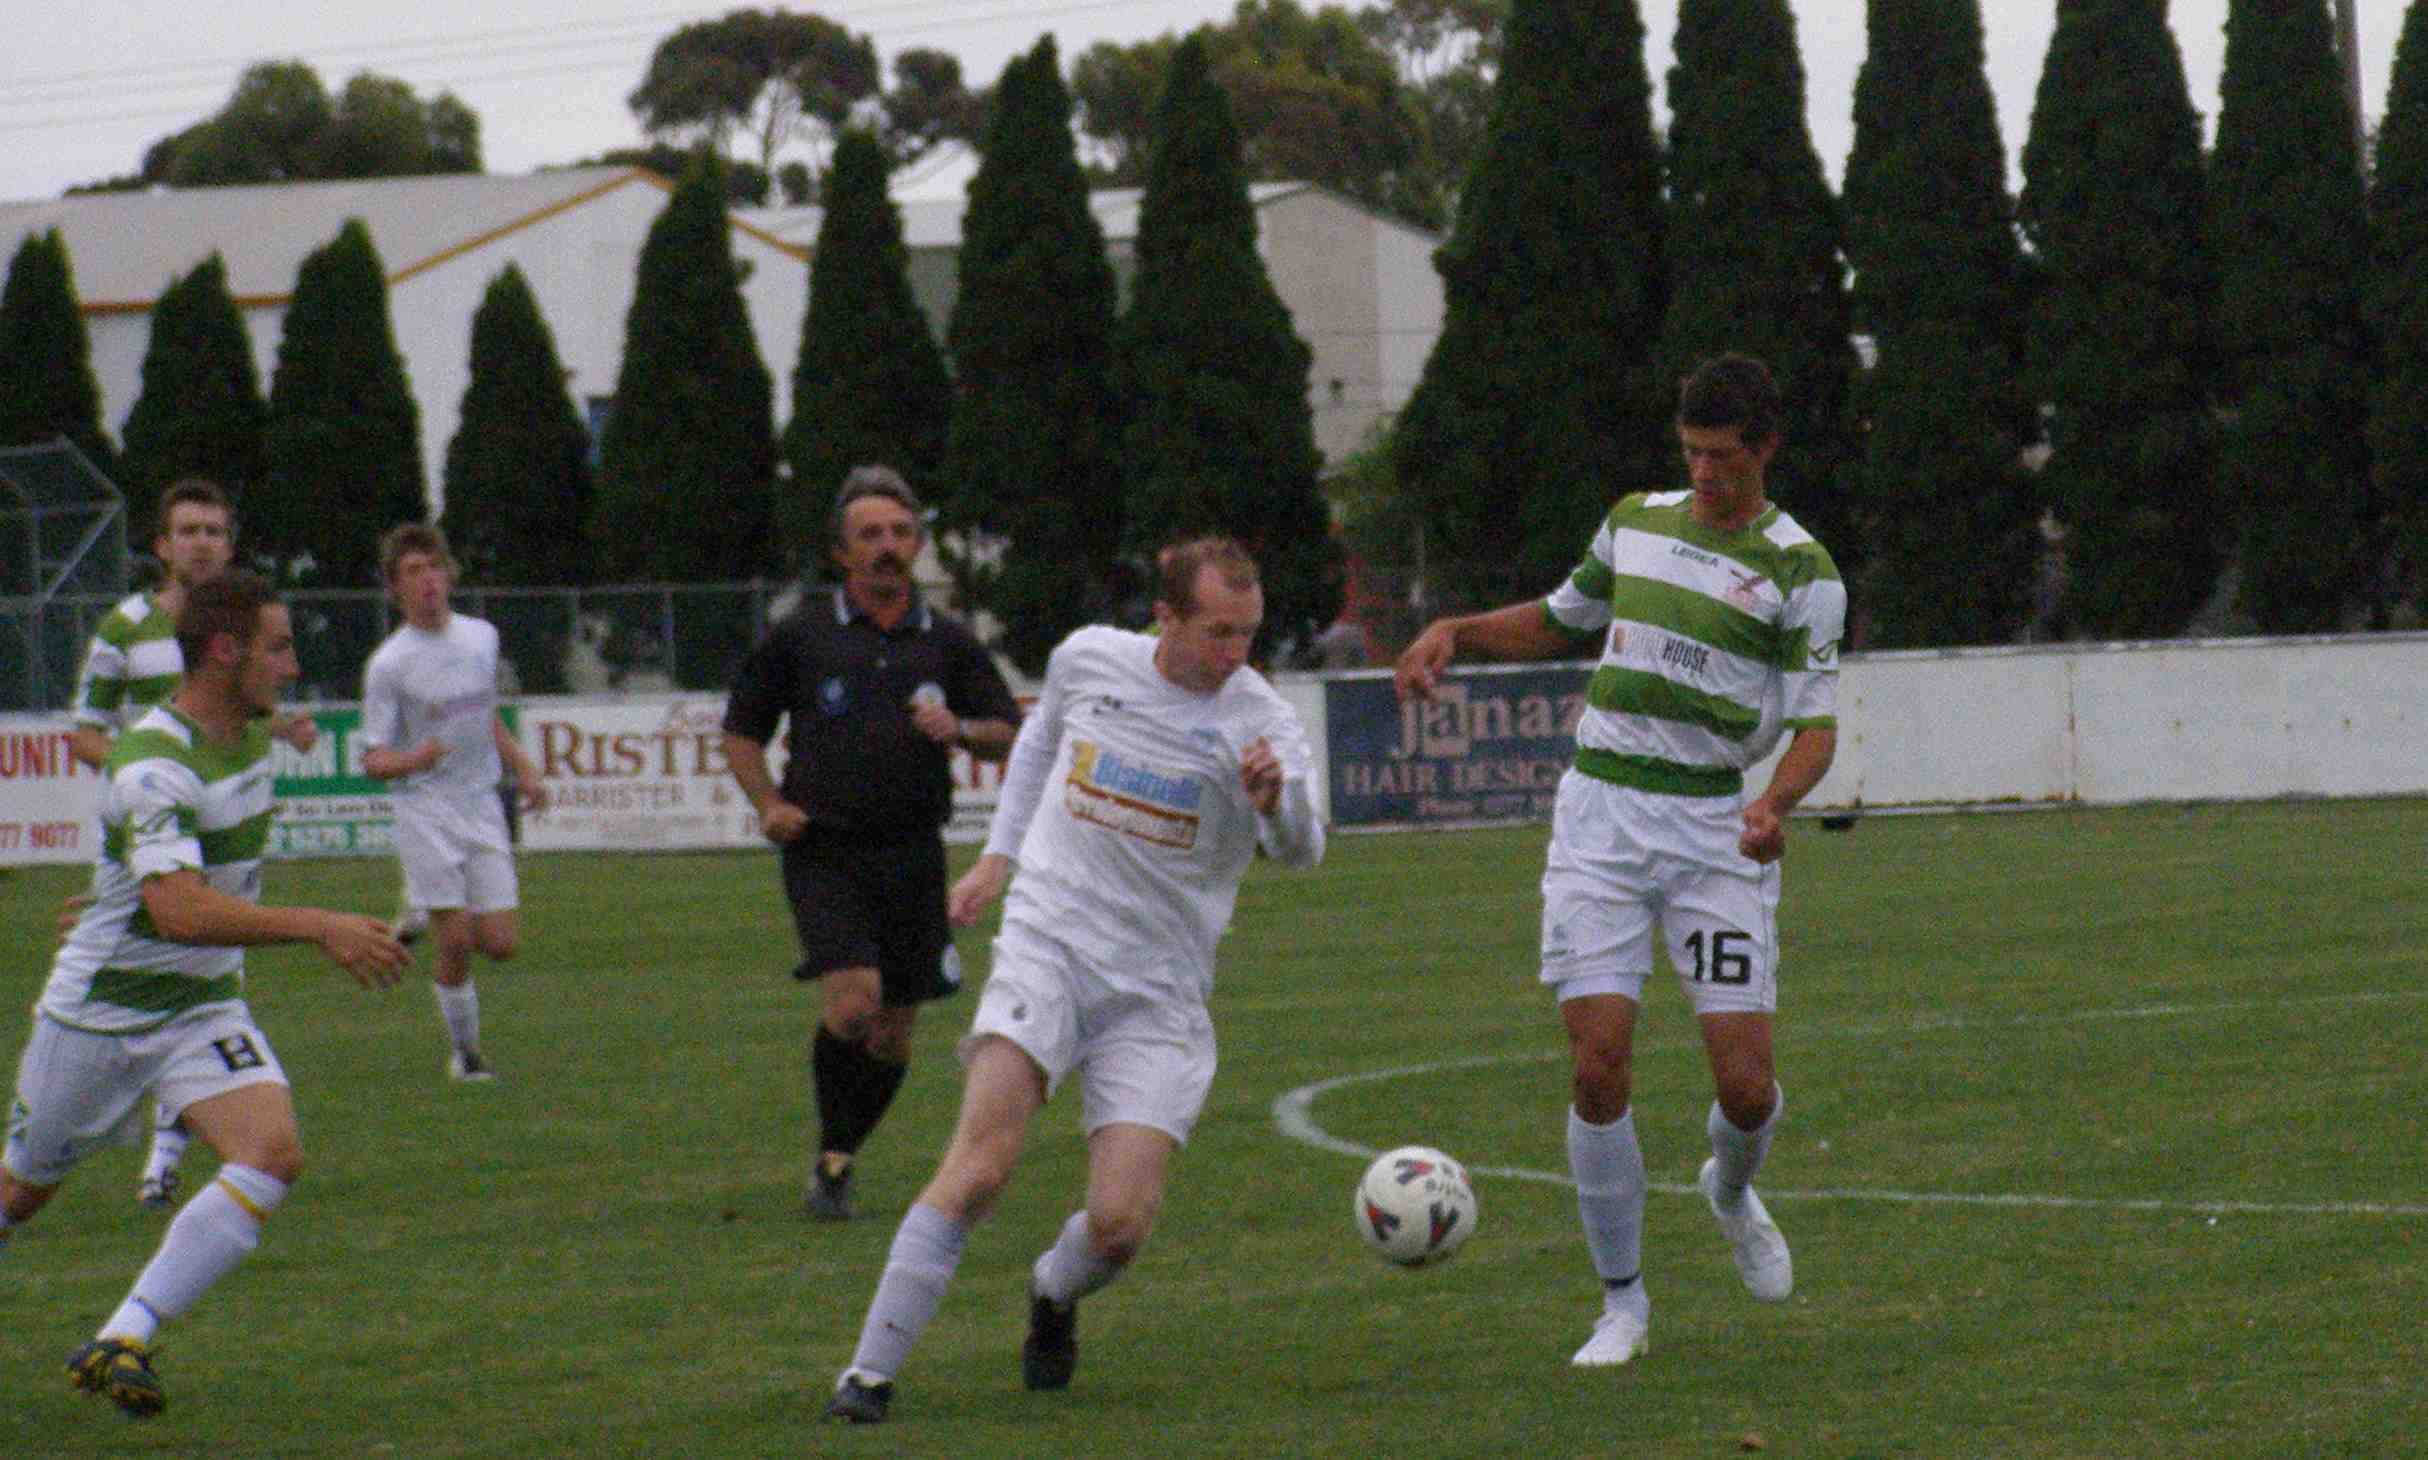 Corio and Surfcoast gain play-off spots